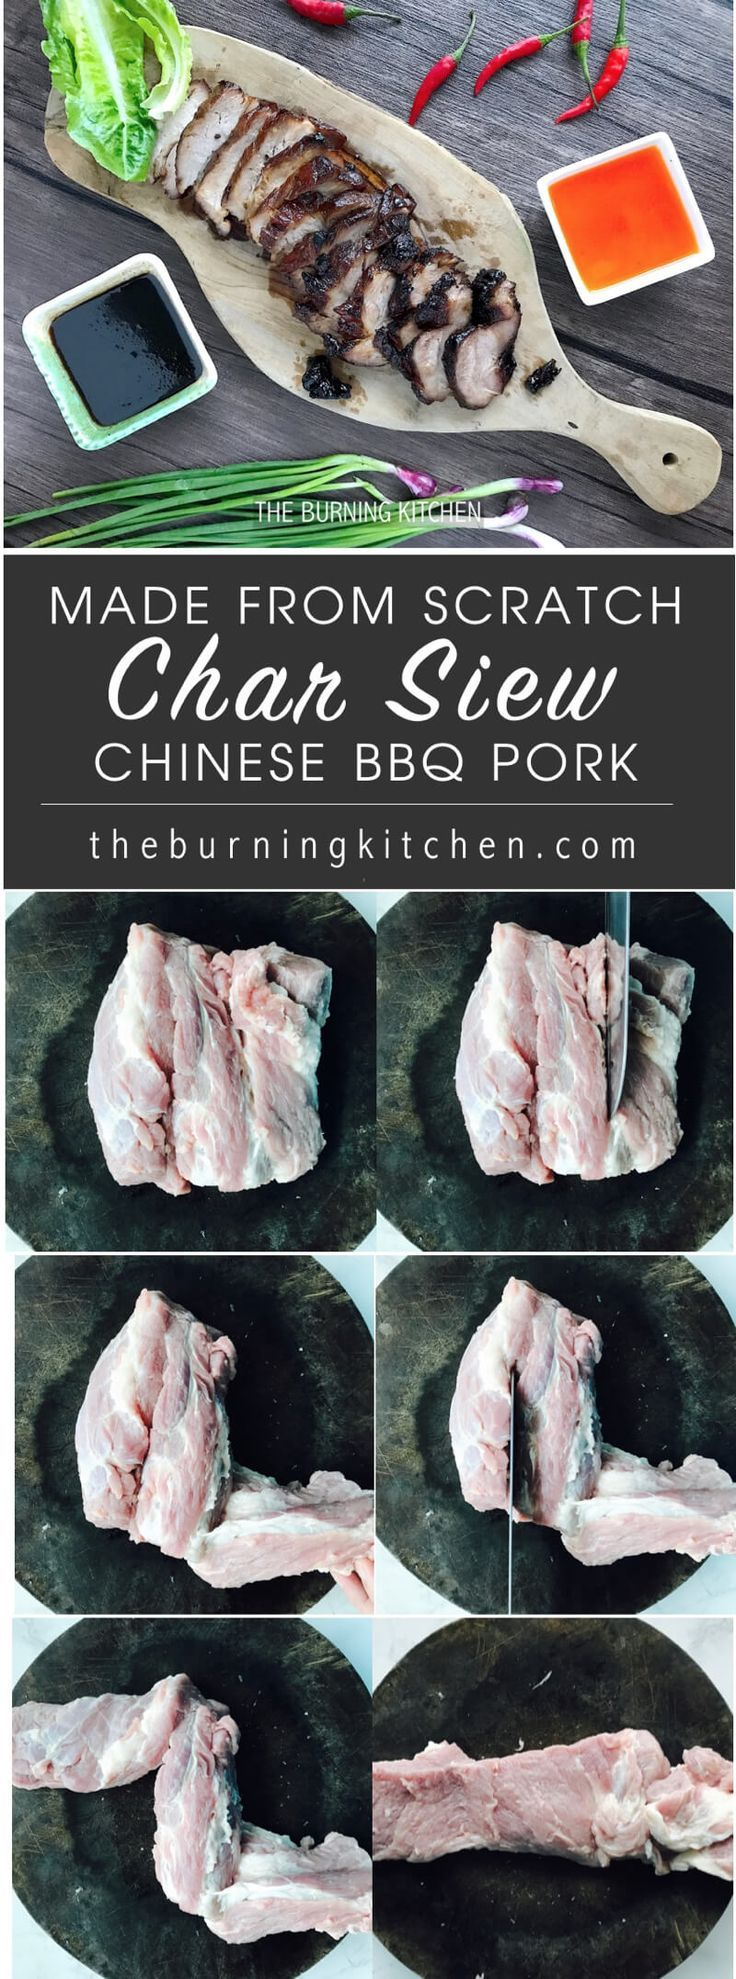 Sticky Chinese BBQPork (Char Siew): This is Mum'sChar Siew recipewith no MSG and nofoodcolouring. Look how juicy and succulent the Char Siew is! My absolute favourite are thelittle sticky glazed bits withaslightly charred, smoky flavour. Simply heavenly... | https://lomejordelaweb.es/